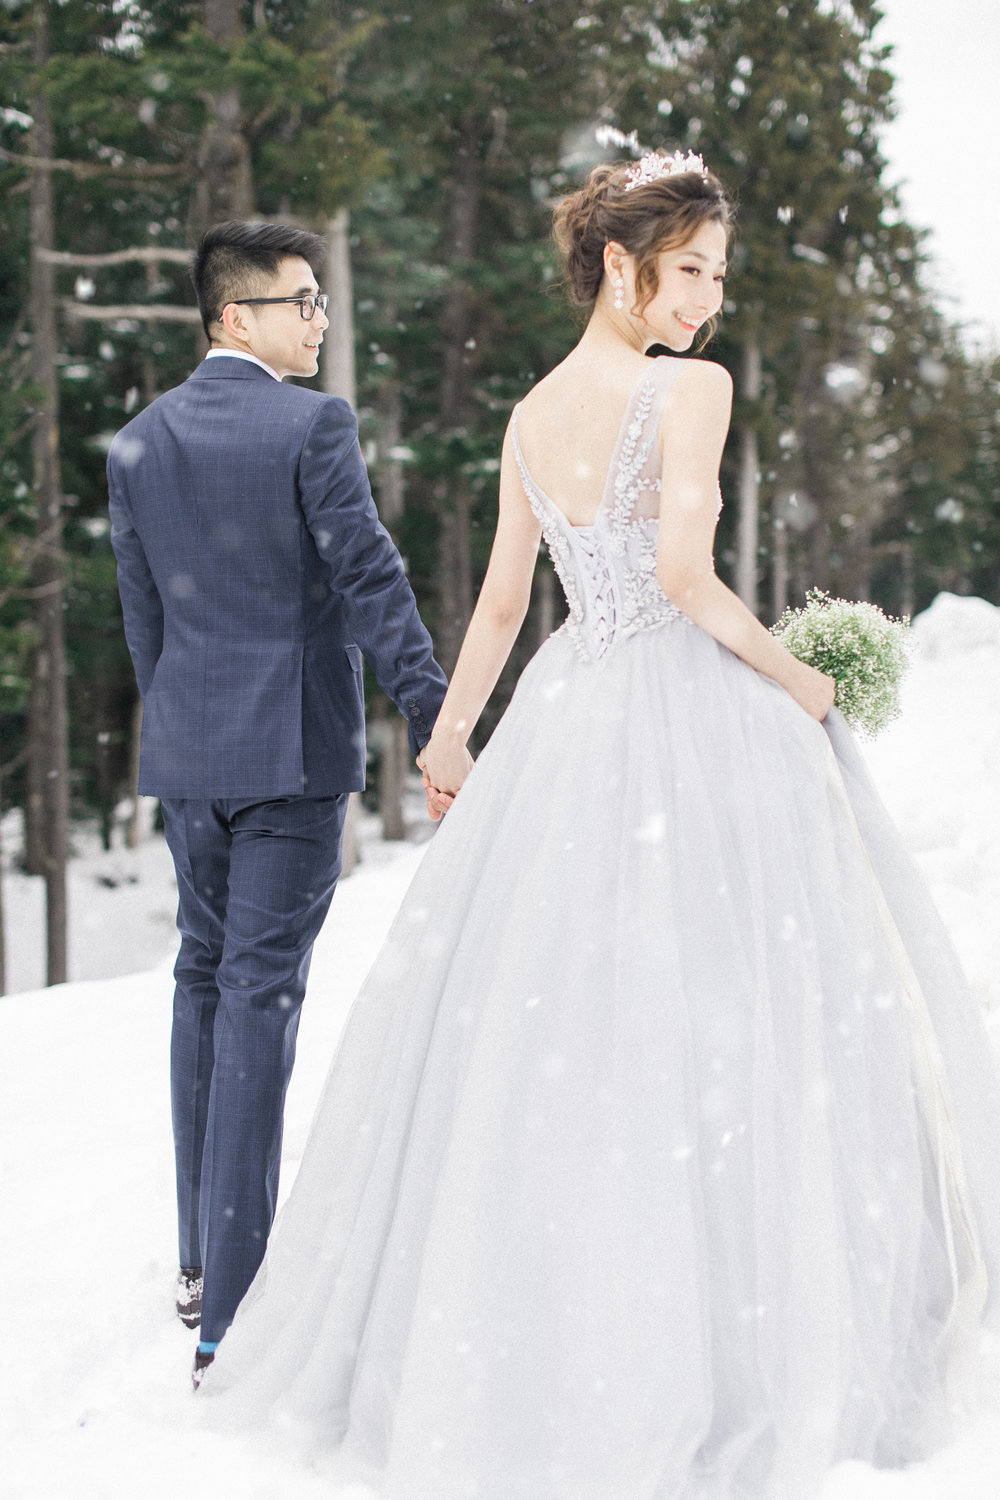 20170225LeslyJerryPreWedding-15 copy.jpg